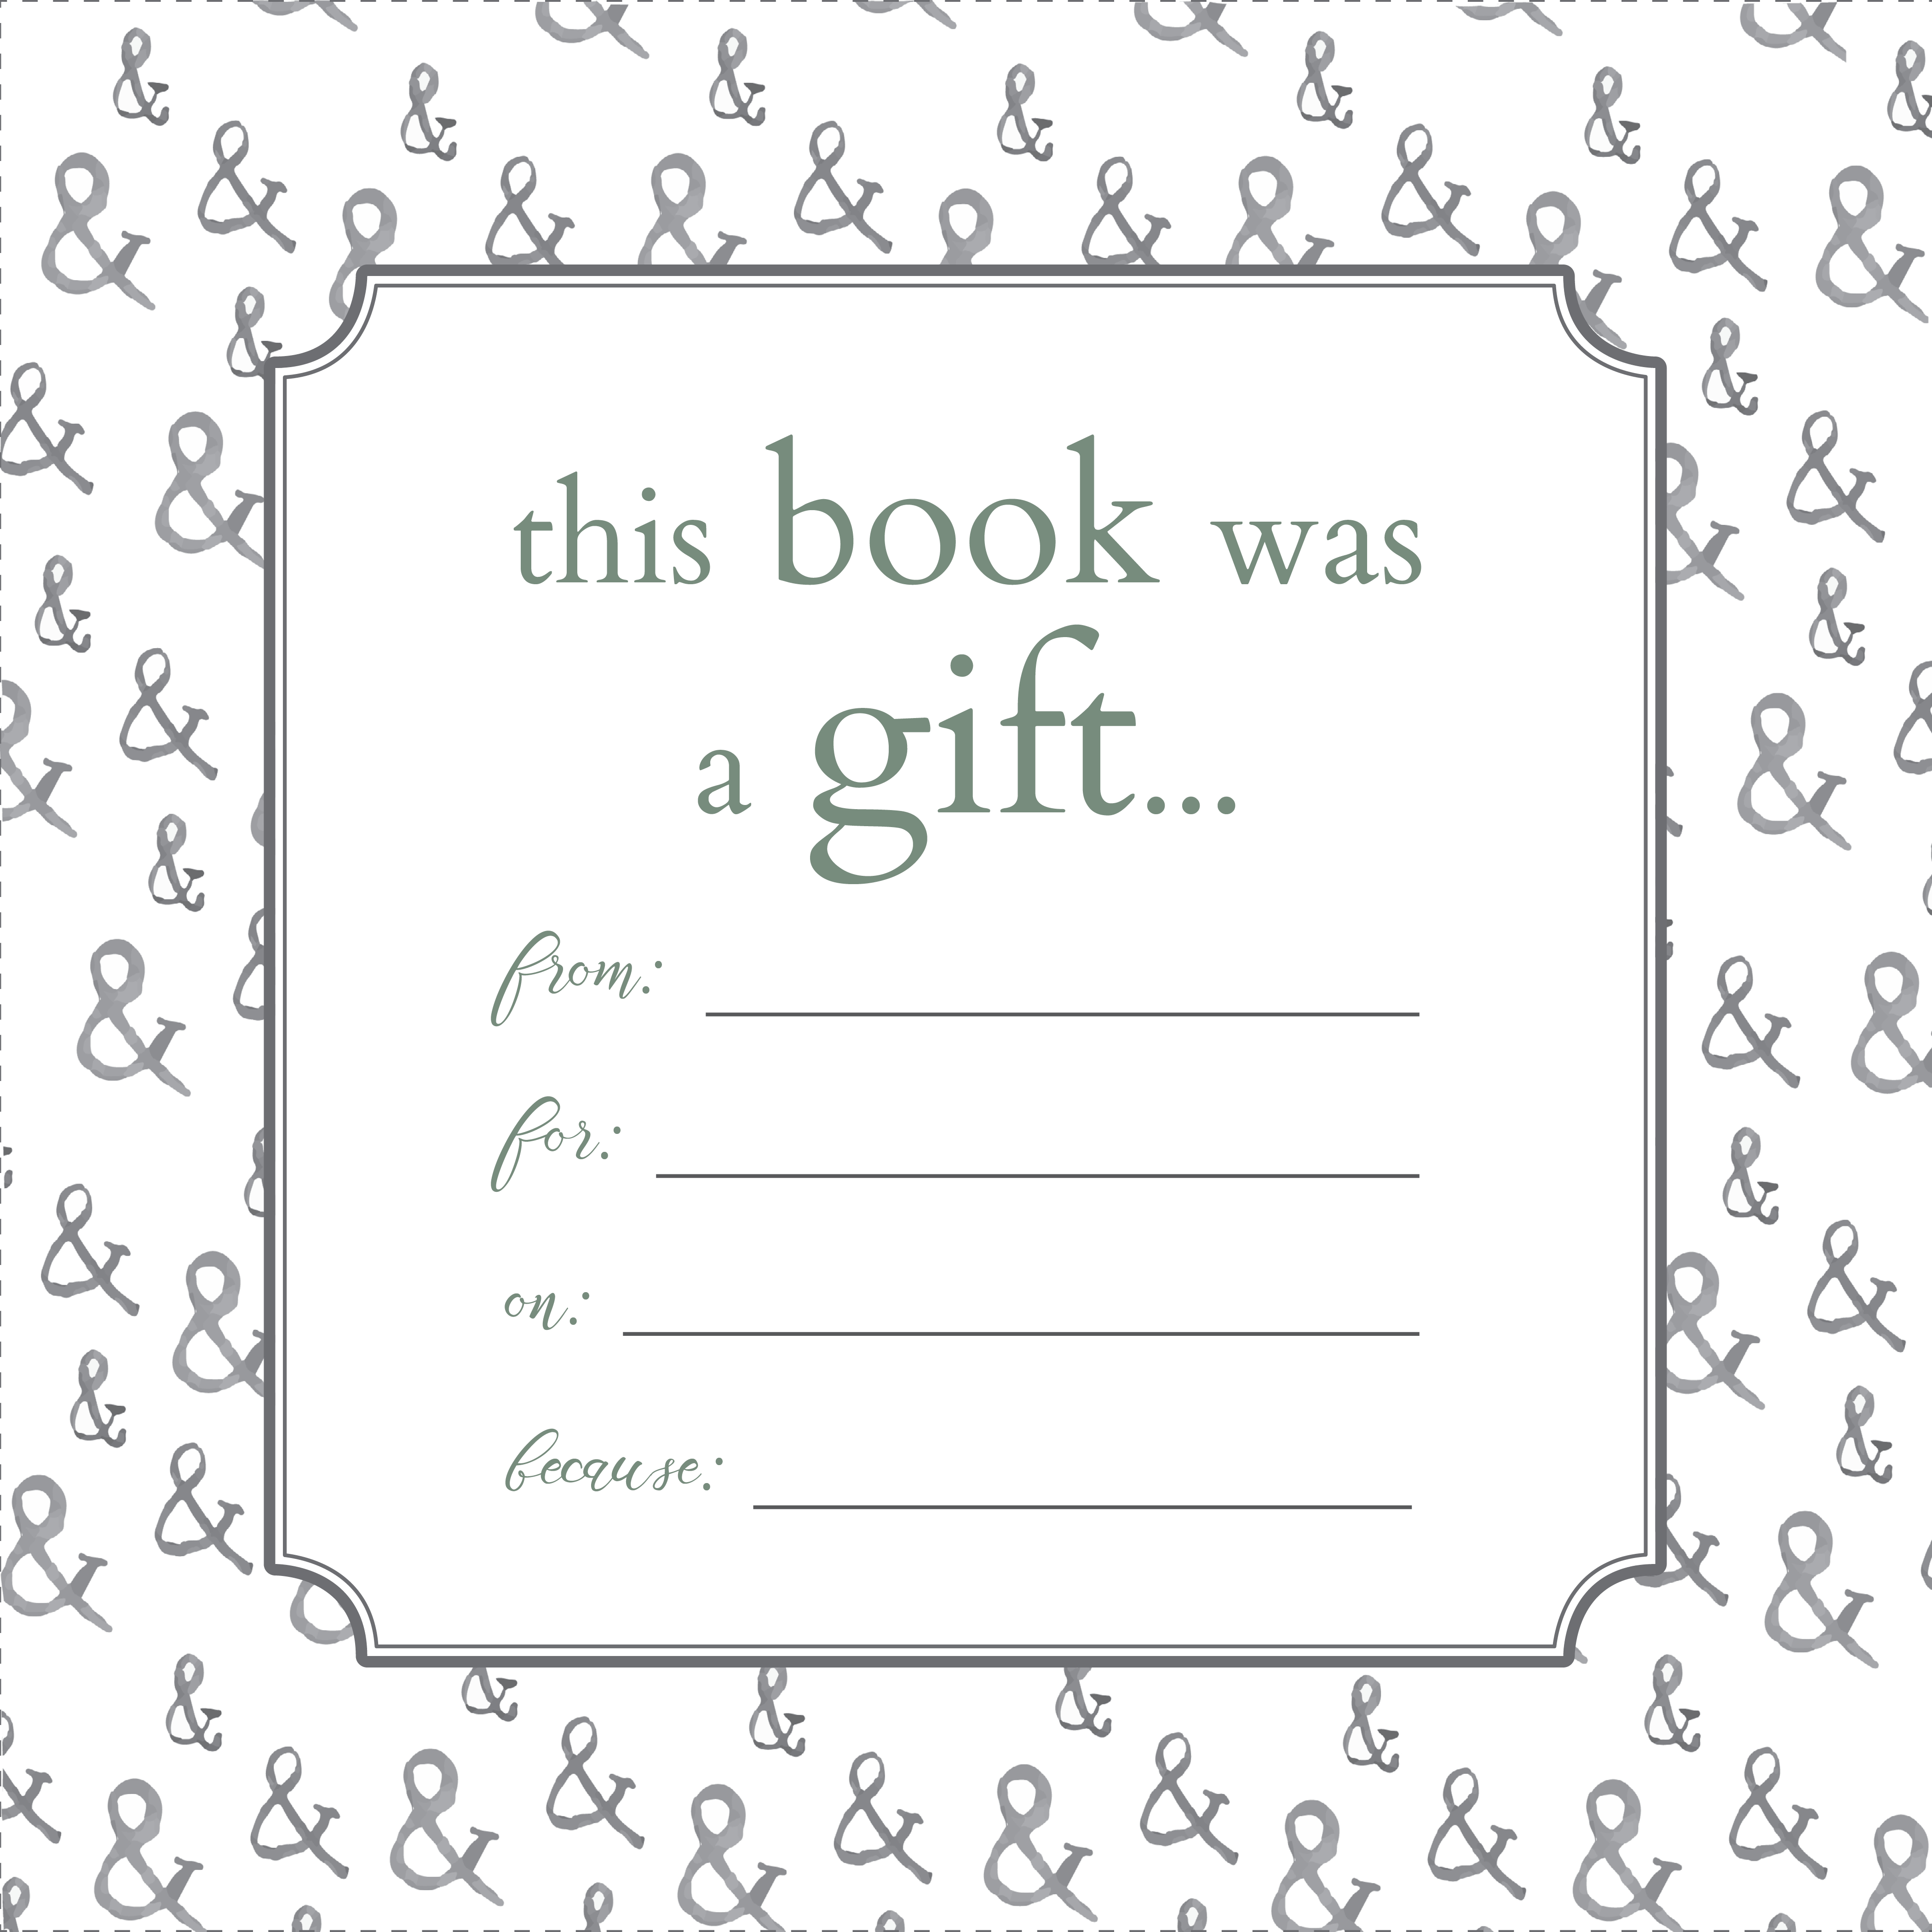 Printable Bookplates For Donated Books | Labels For Book | Books - Free Printable Christmas Bookplates